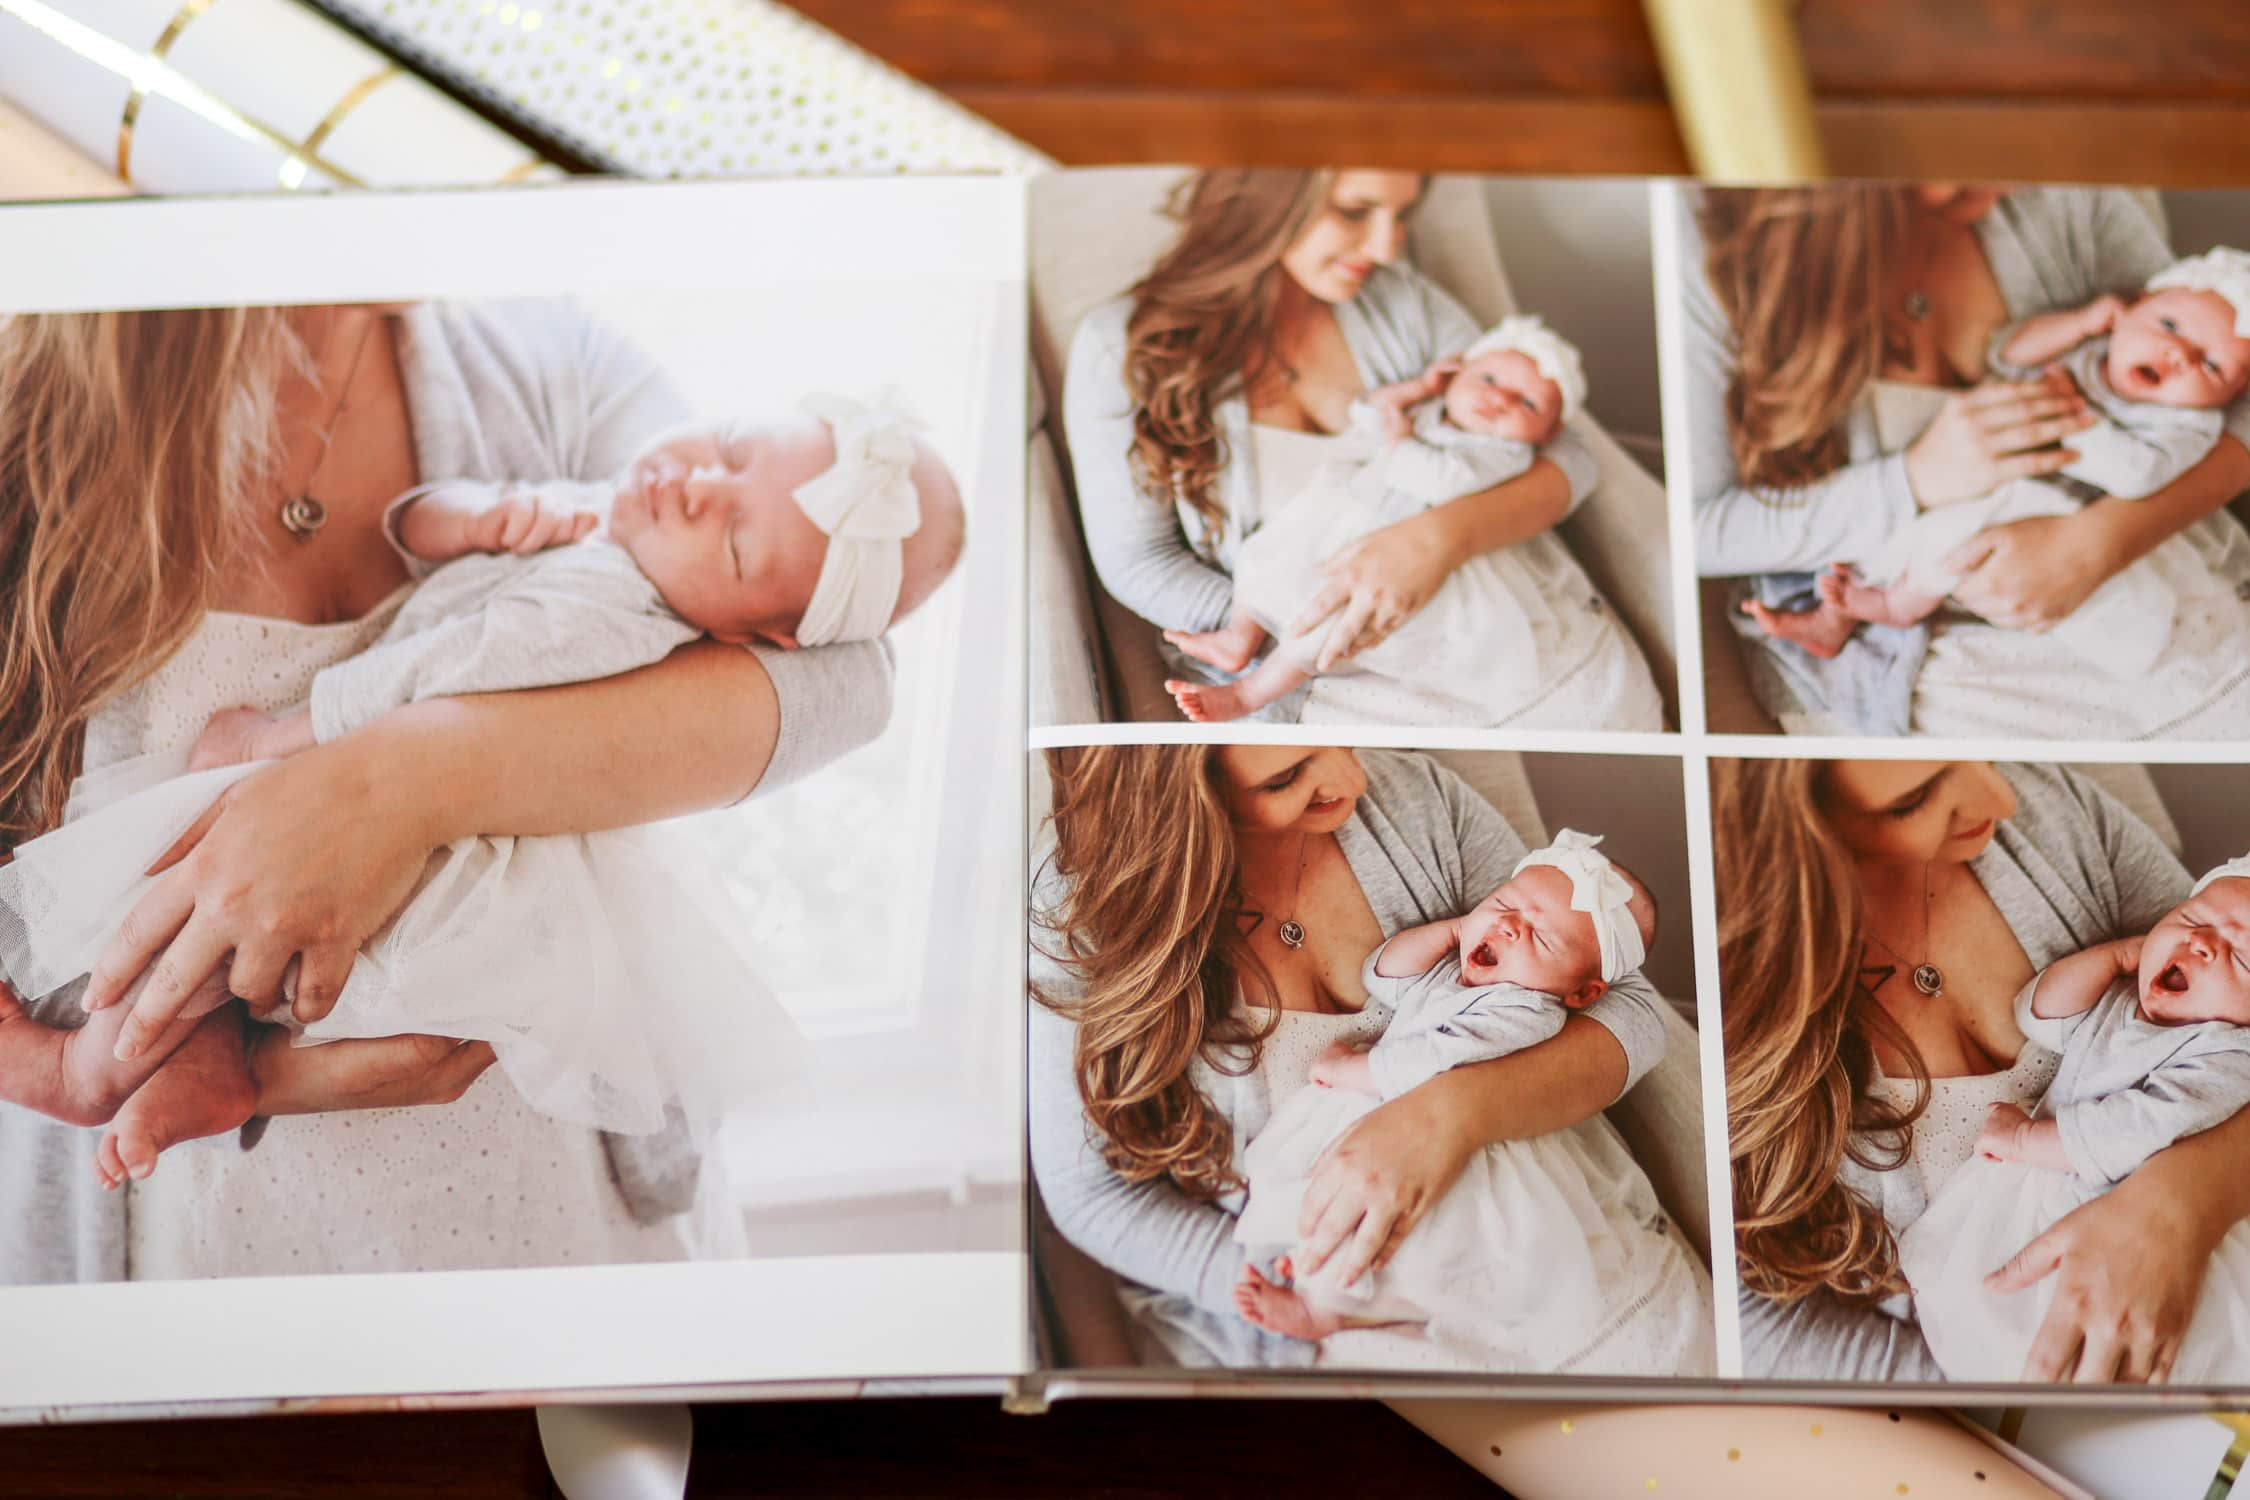 Personalized Christmas gifts | Baby's first Christmas | Newborn baby | Christmas gift Ideas shutterfly gifts | Christmas Ideas | Ashley Brooke Nicholas beauty blogger